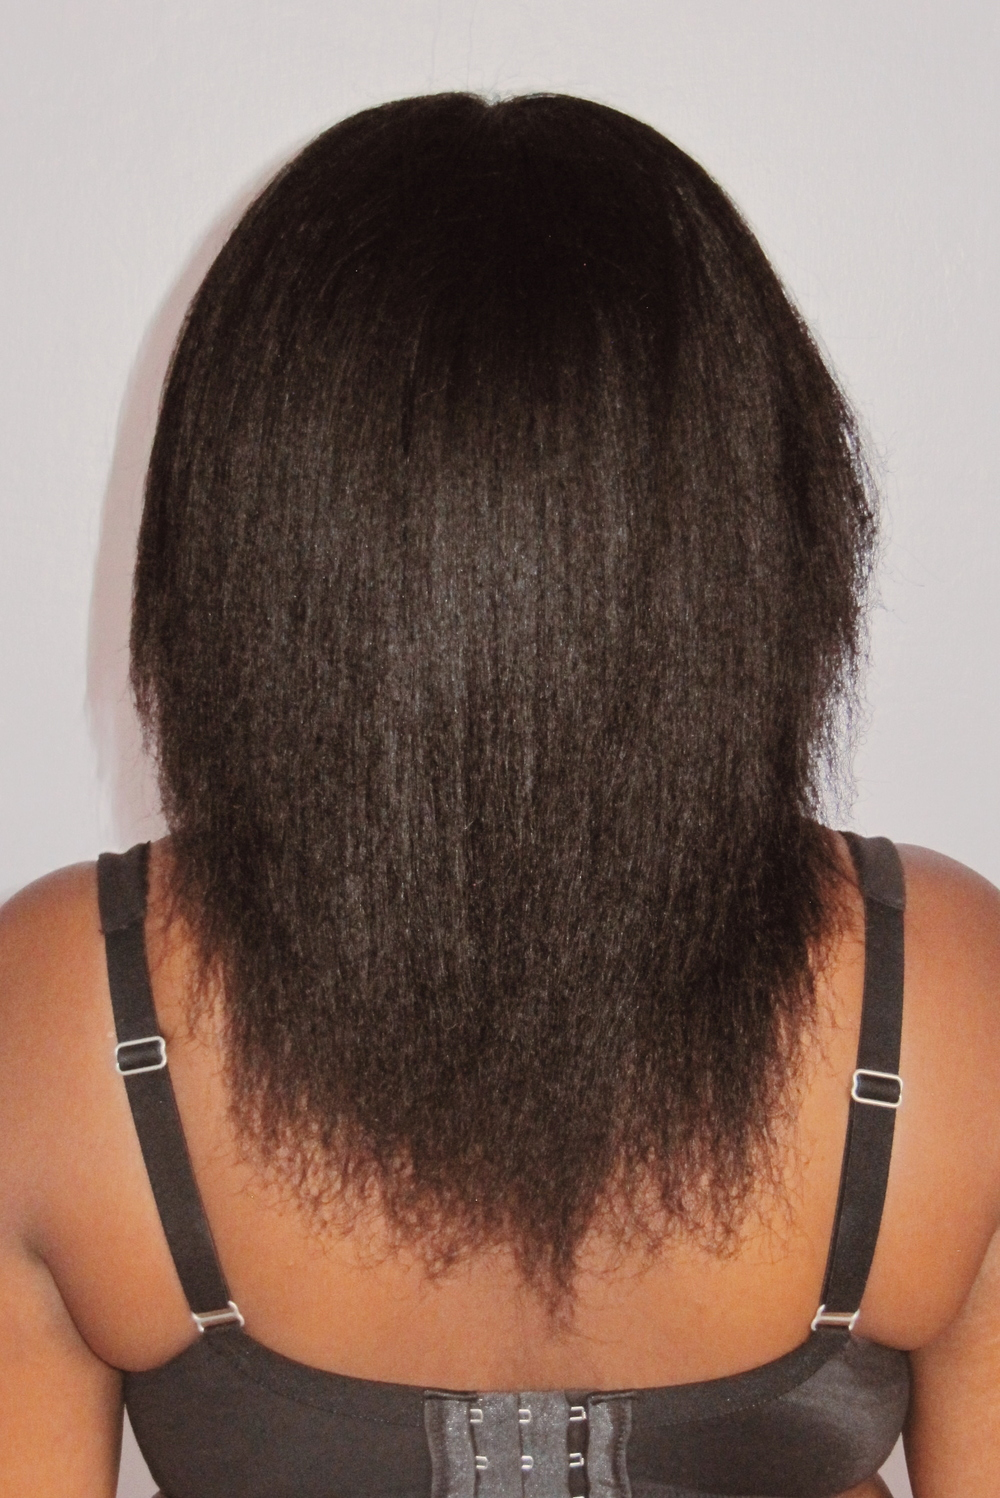 If you're new to the natural hair community, don't be surprised by this shot. One of the ways to measure hair growth is by progress made down your back. This shot captures some SERIOUS SPLIT ENDS, but also my length. I was squarely at the mid-point between shoulder length and armpit length.